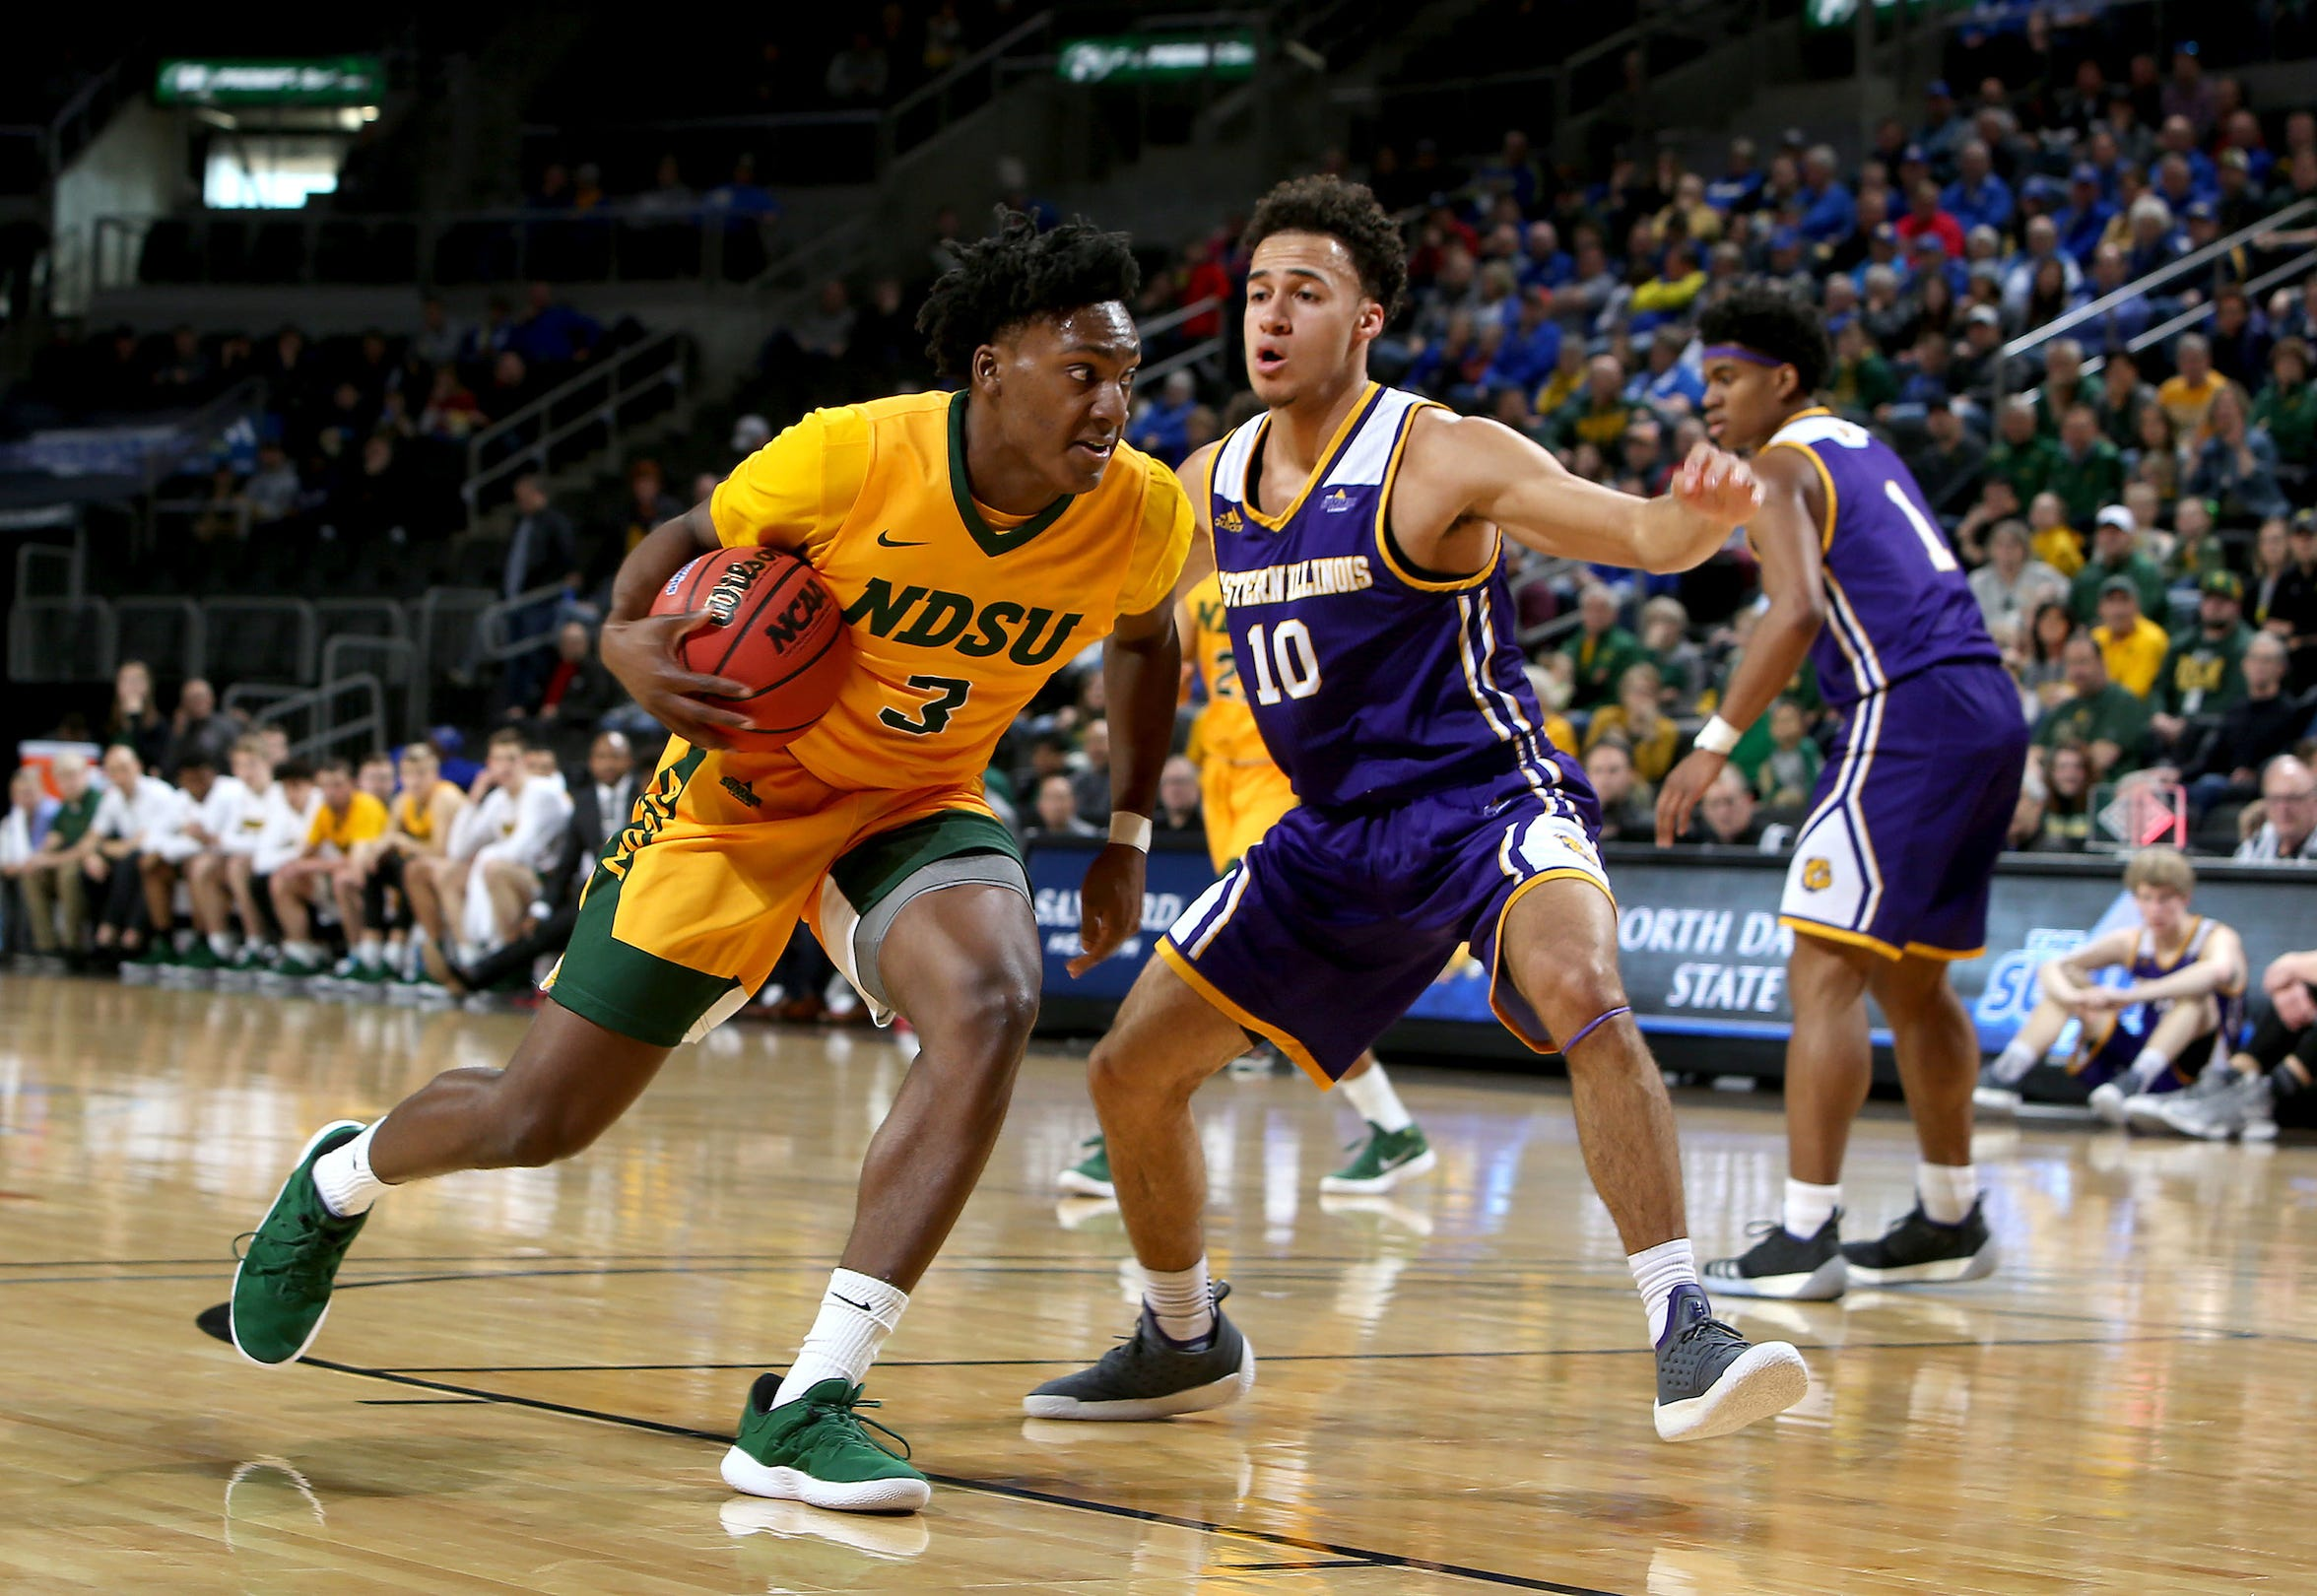 Tyree Eady (left) is one of two Middleton High School alumni in the NCAA Tournament.